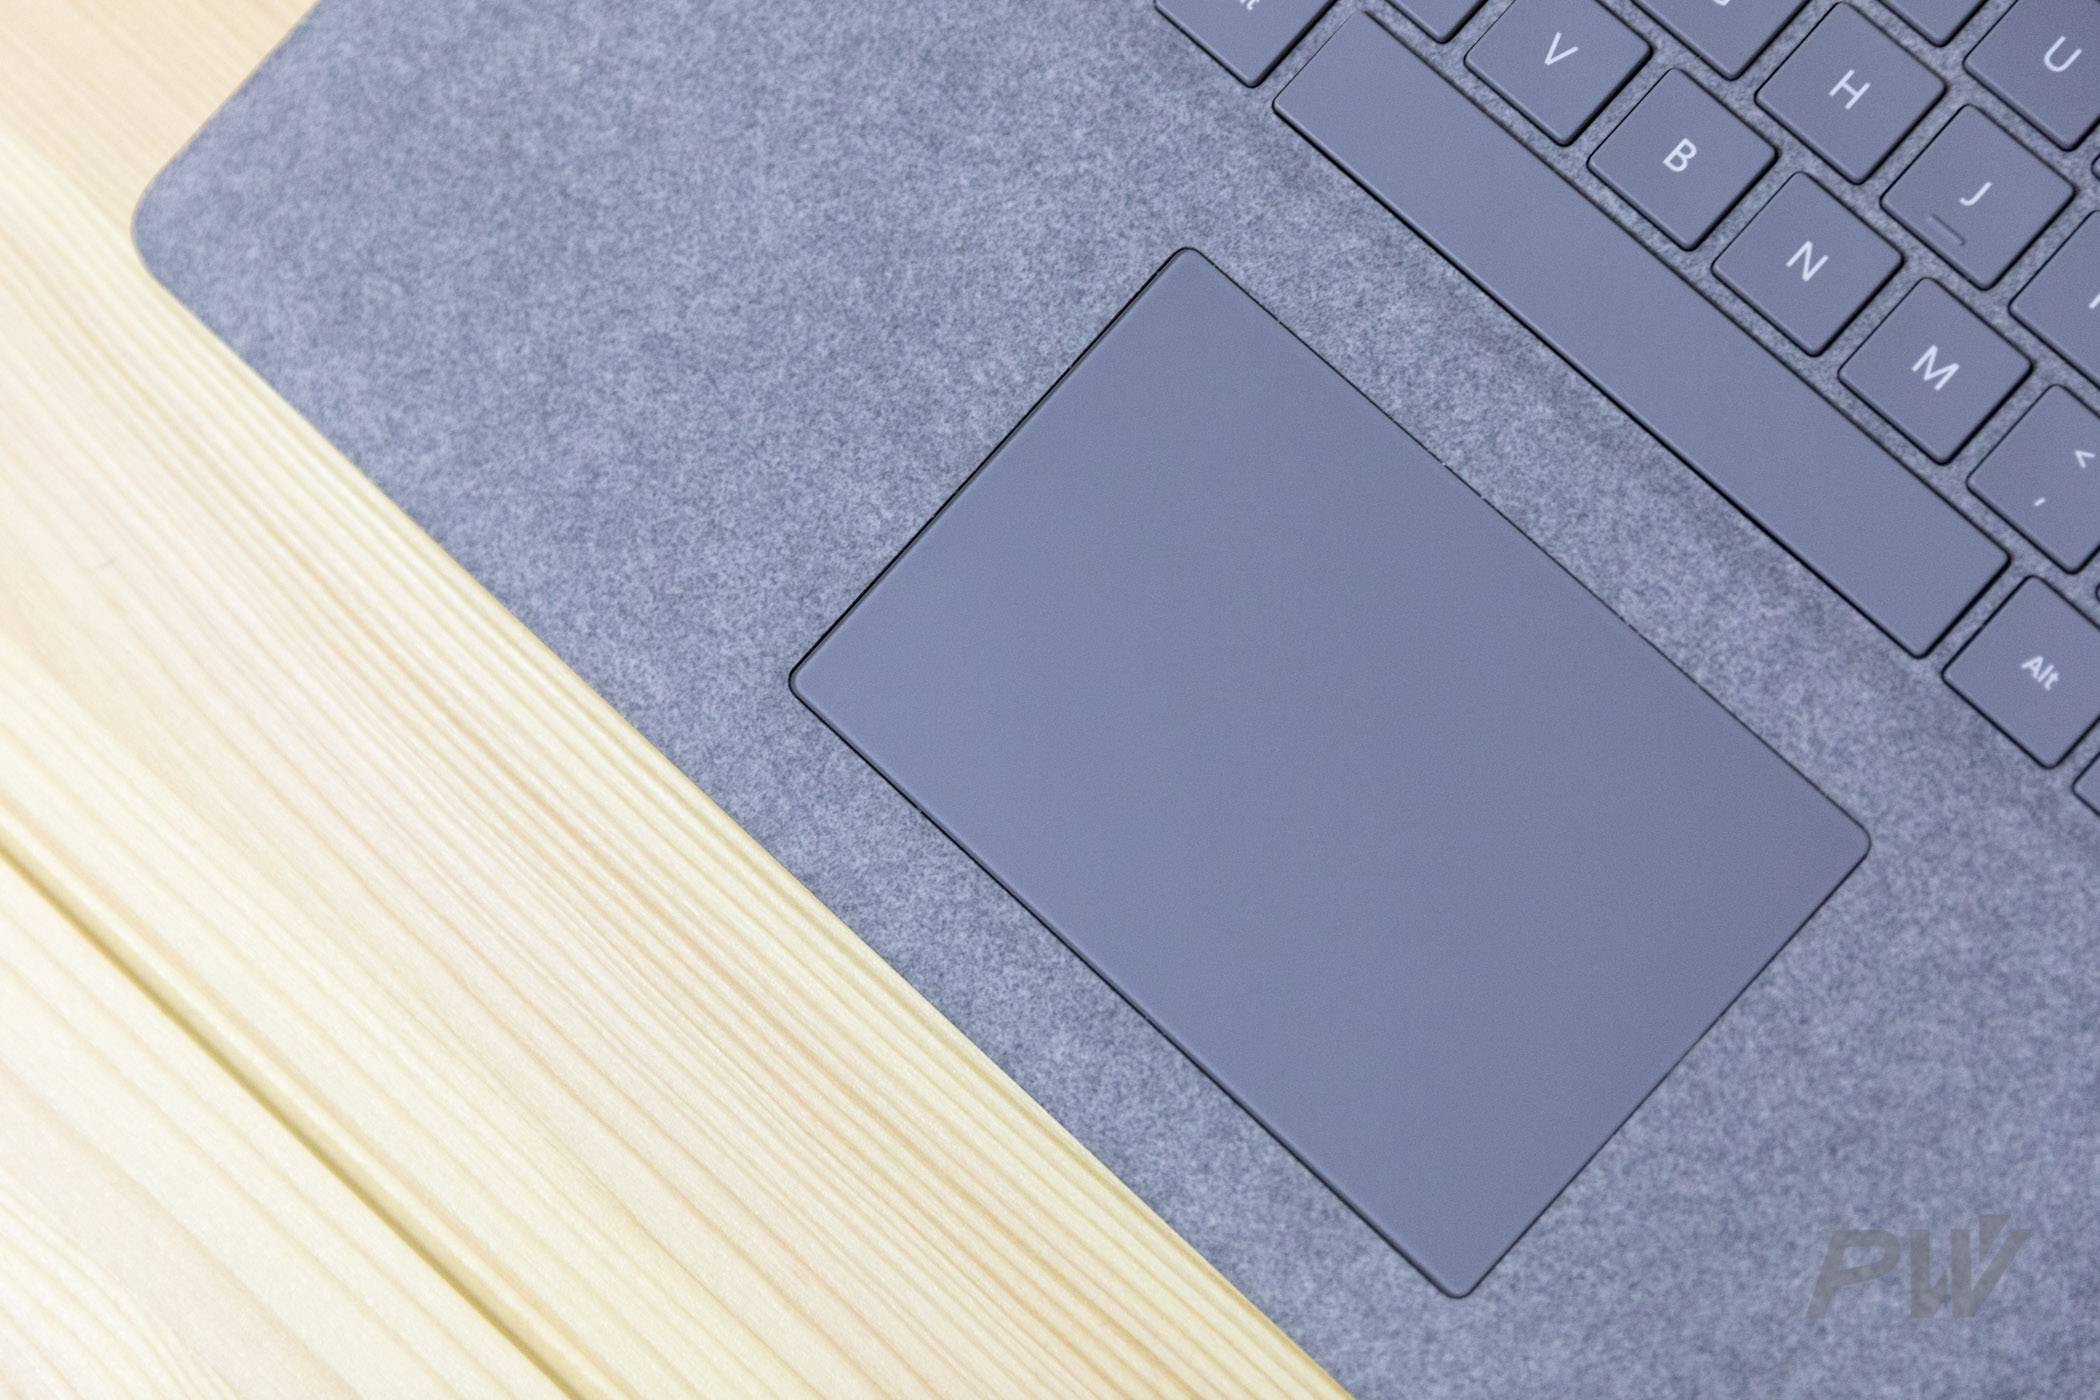 Microsoft Surface Laptop Photo By Hao Ying-2